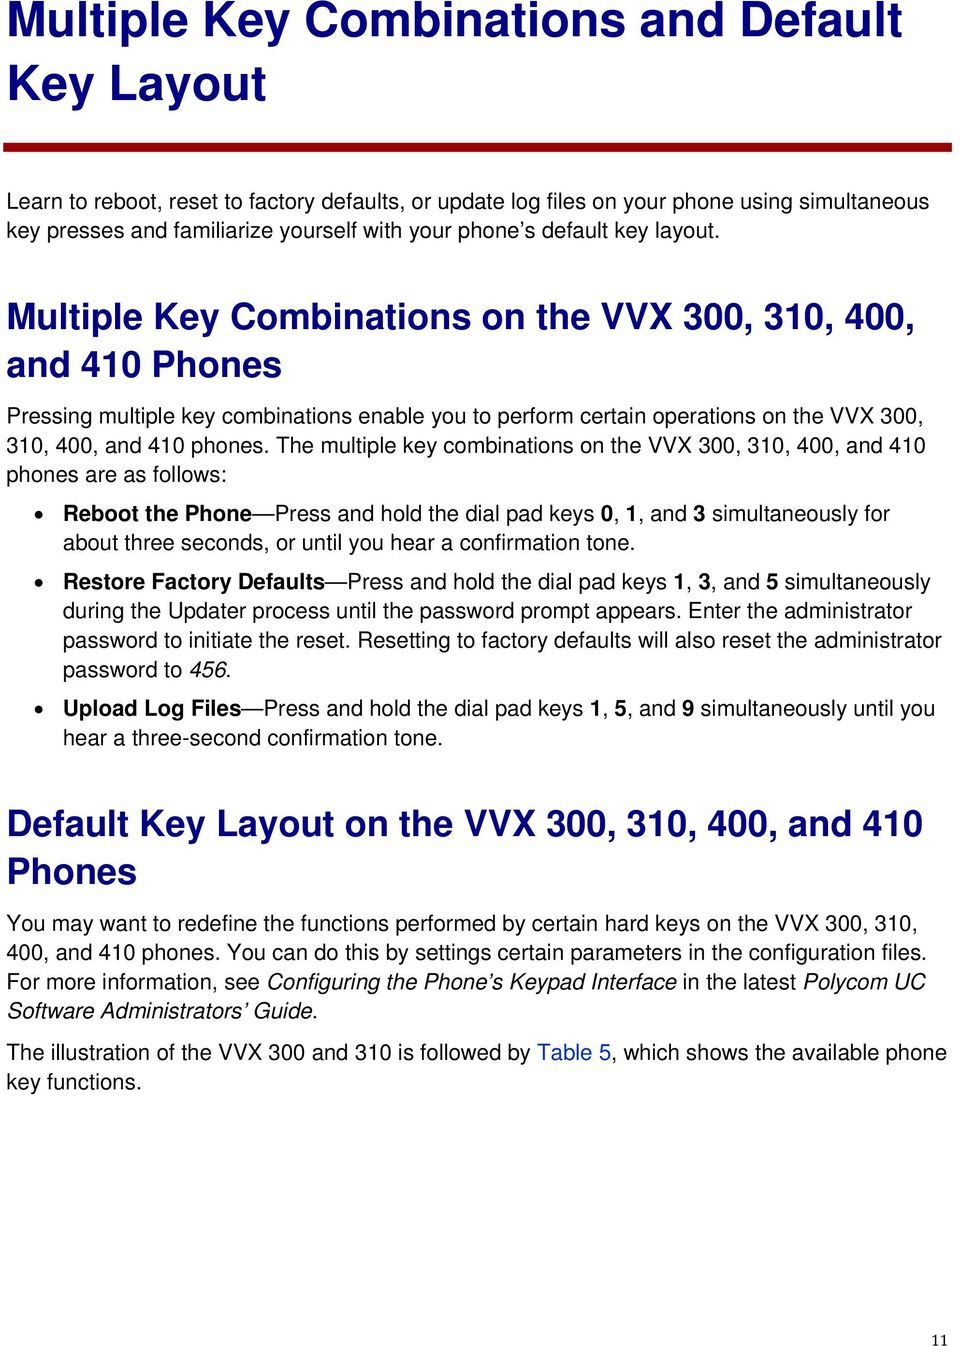 Multiple Key Combinations on the VVX 300, 310, 400, and 410 Phones Pressing multiple key combinations enable you to perform certain operations on the VVX 300, 310, 400, and 410 phones.